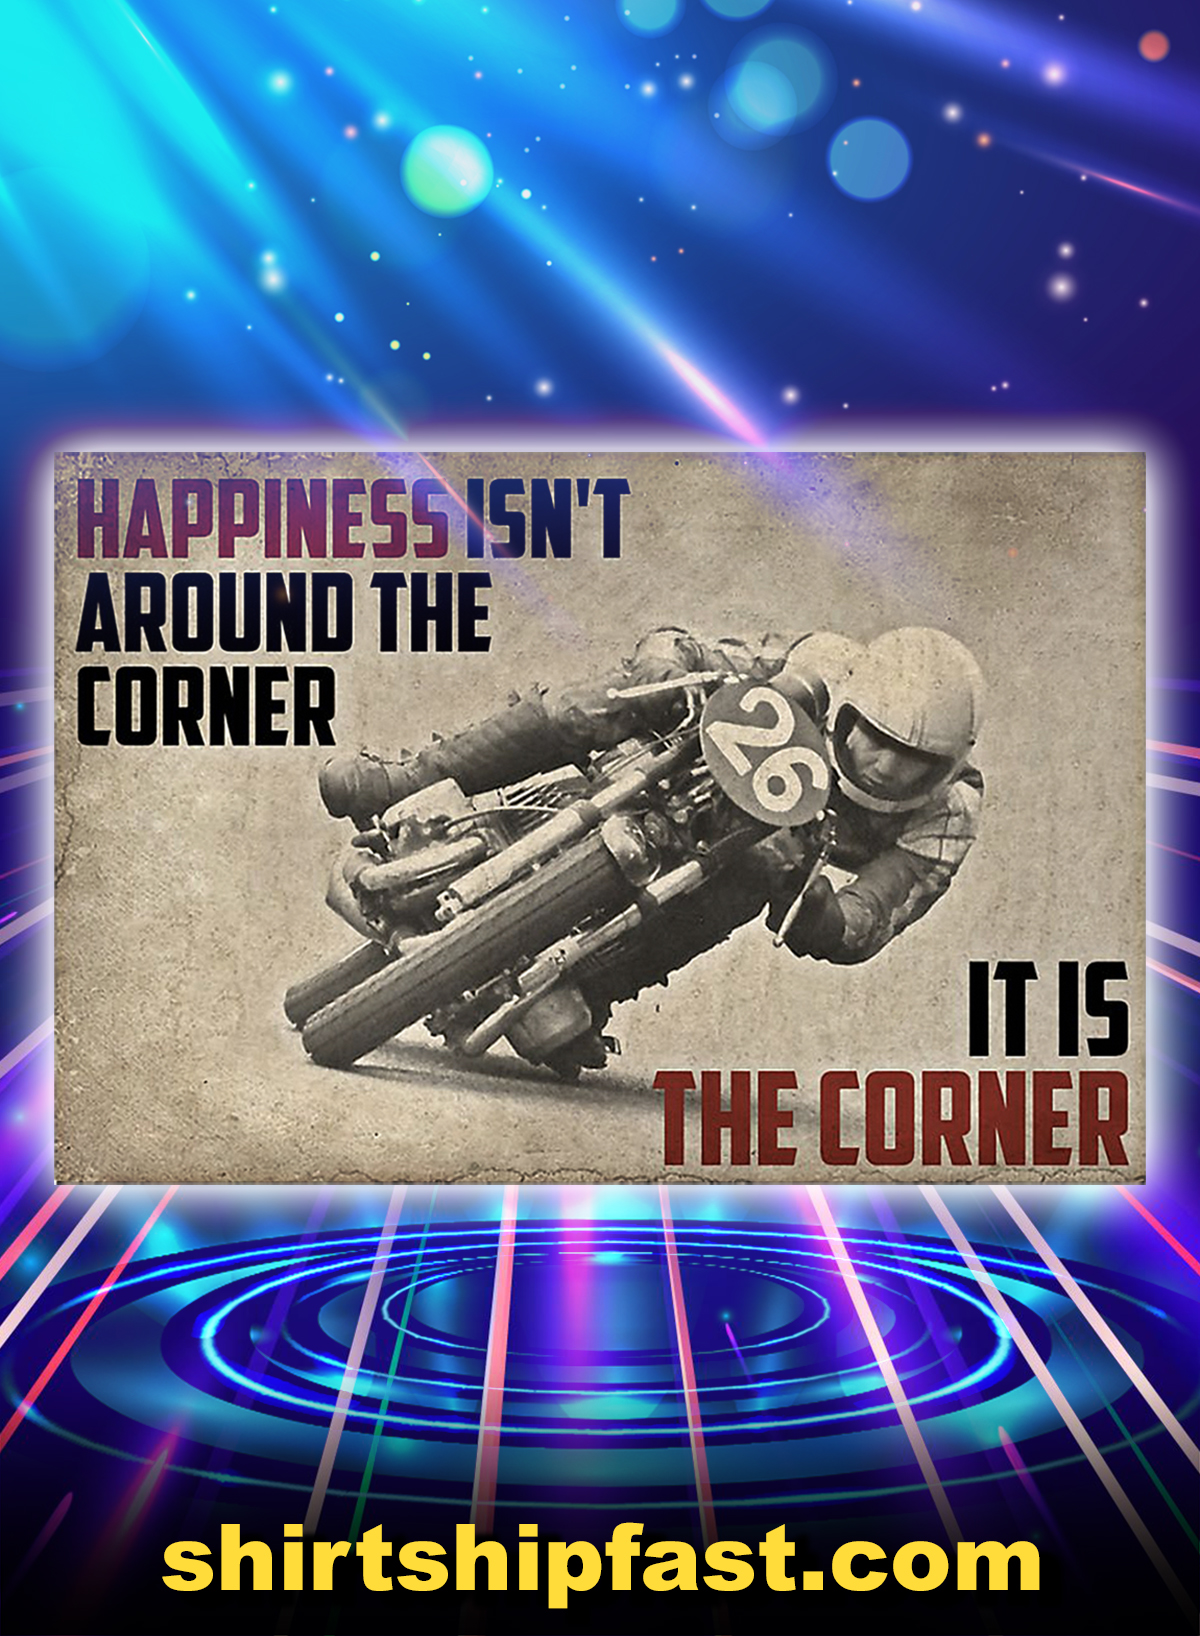 Motorcycle happiness isn't around the corner It is the corner poster - A1